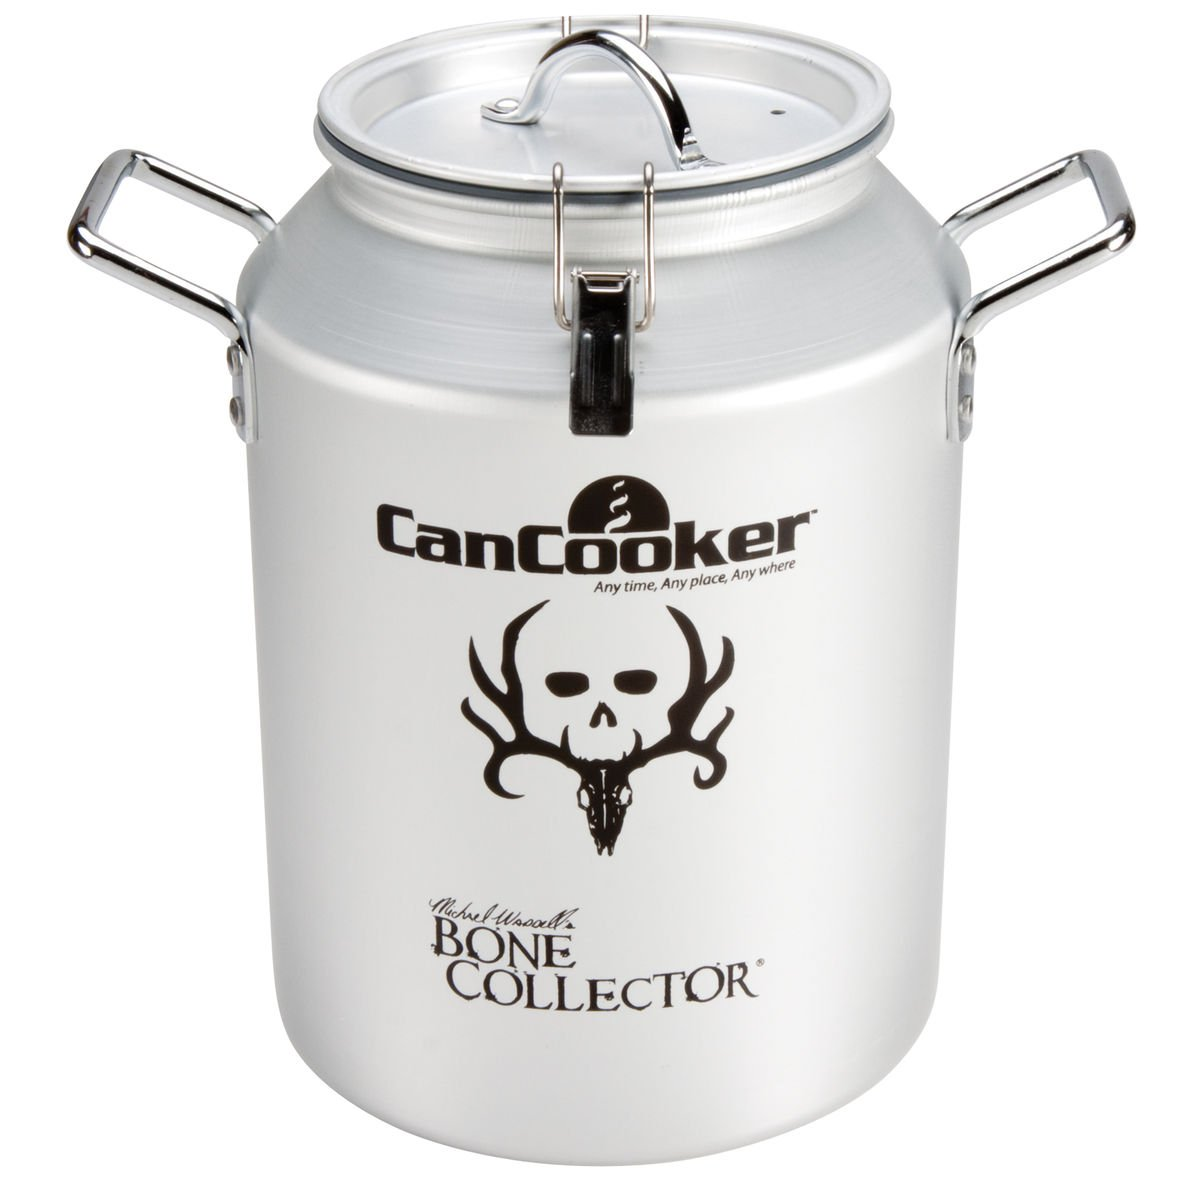 The Bone Collector CanCooker